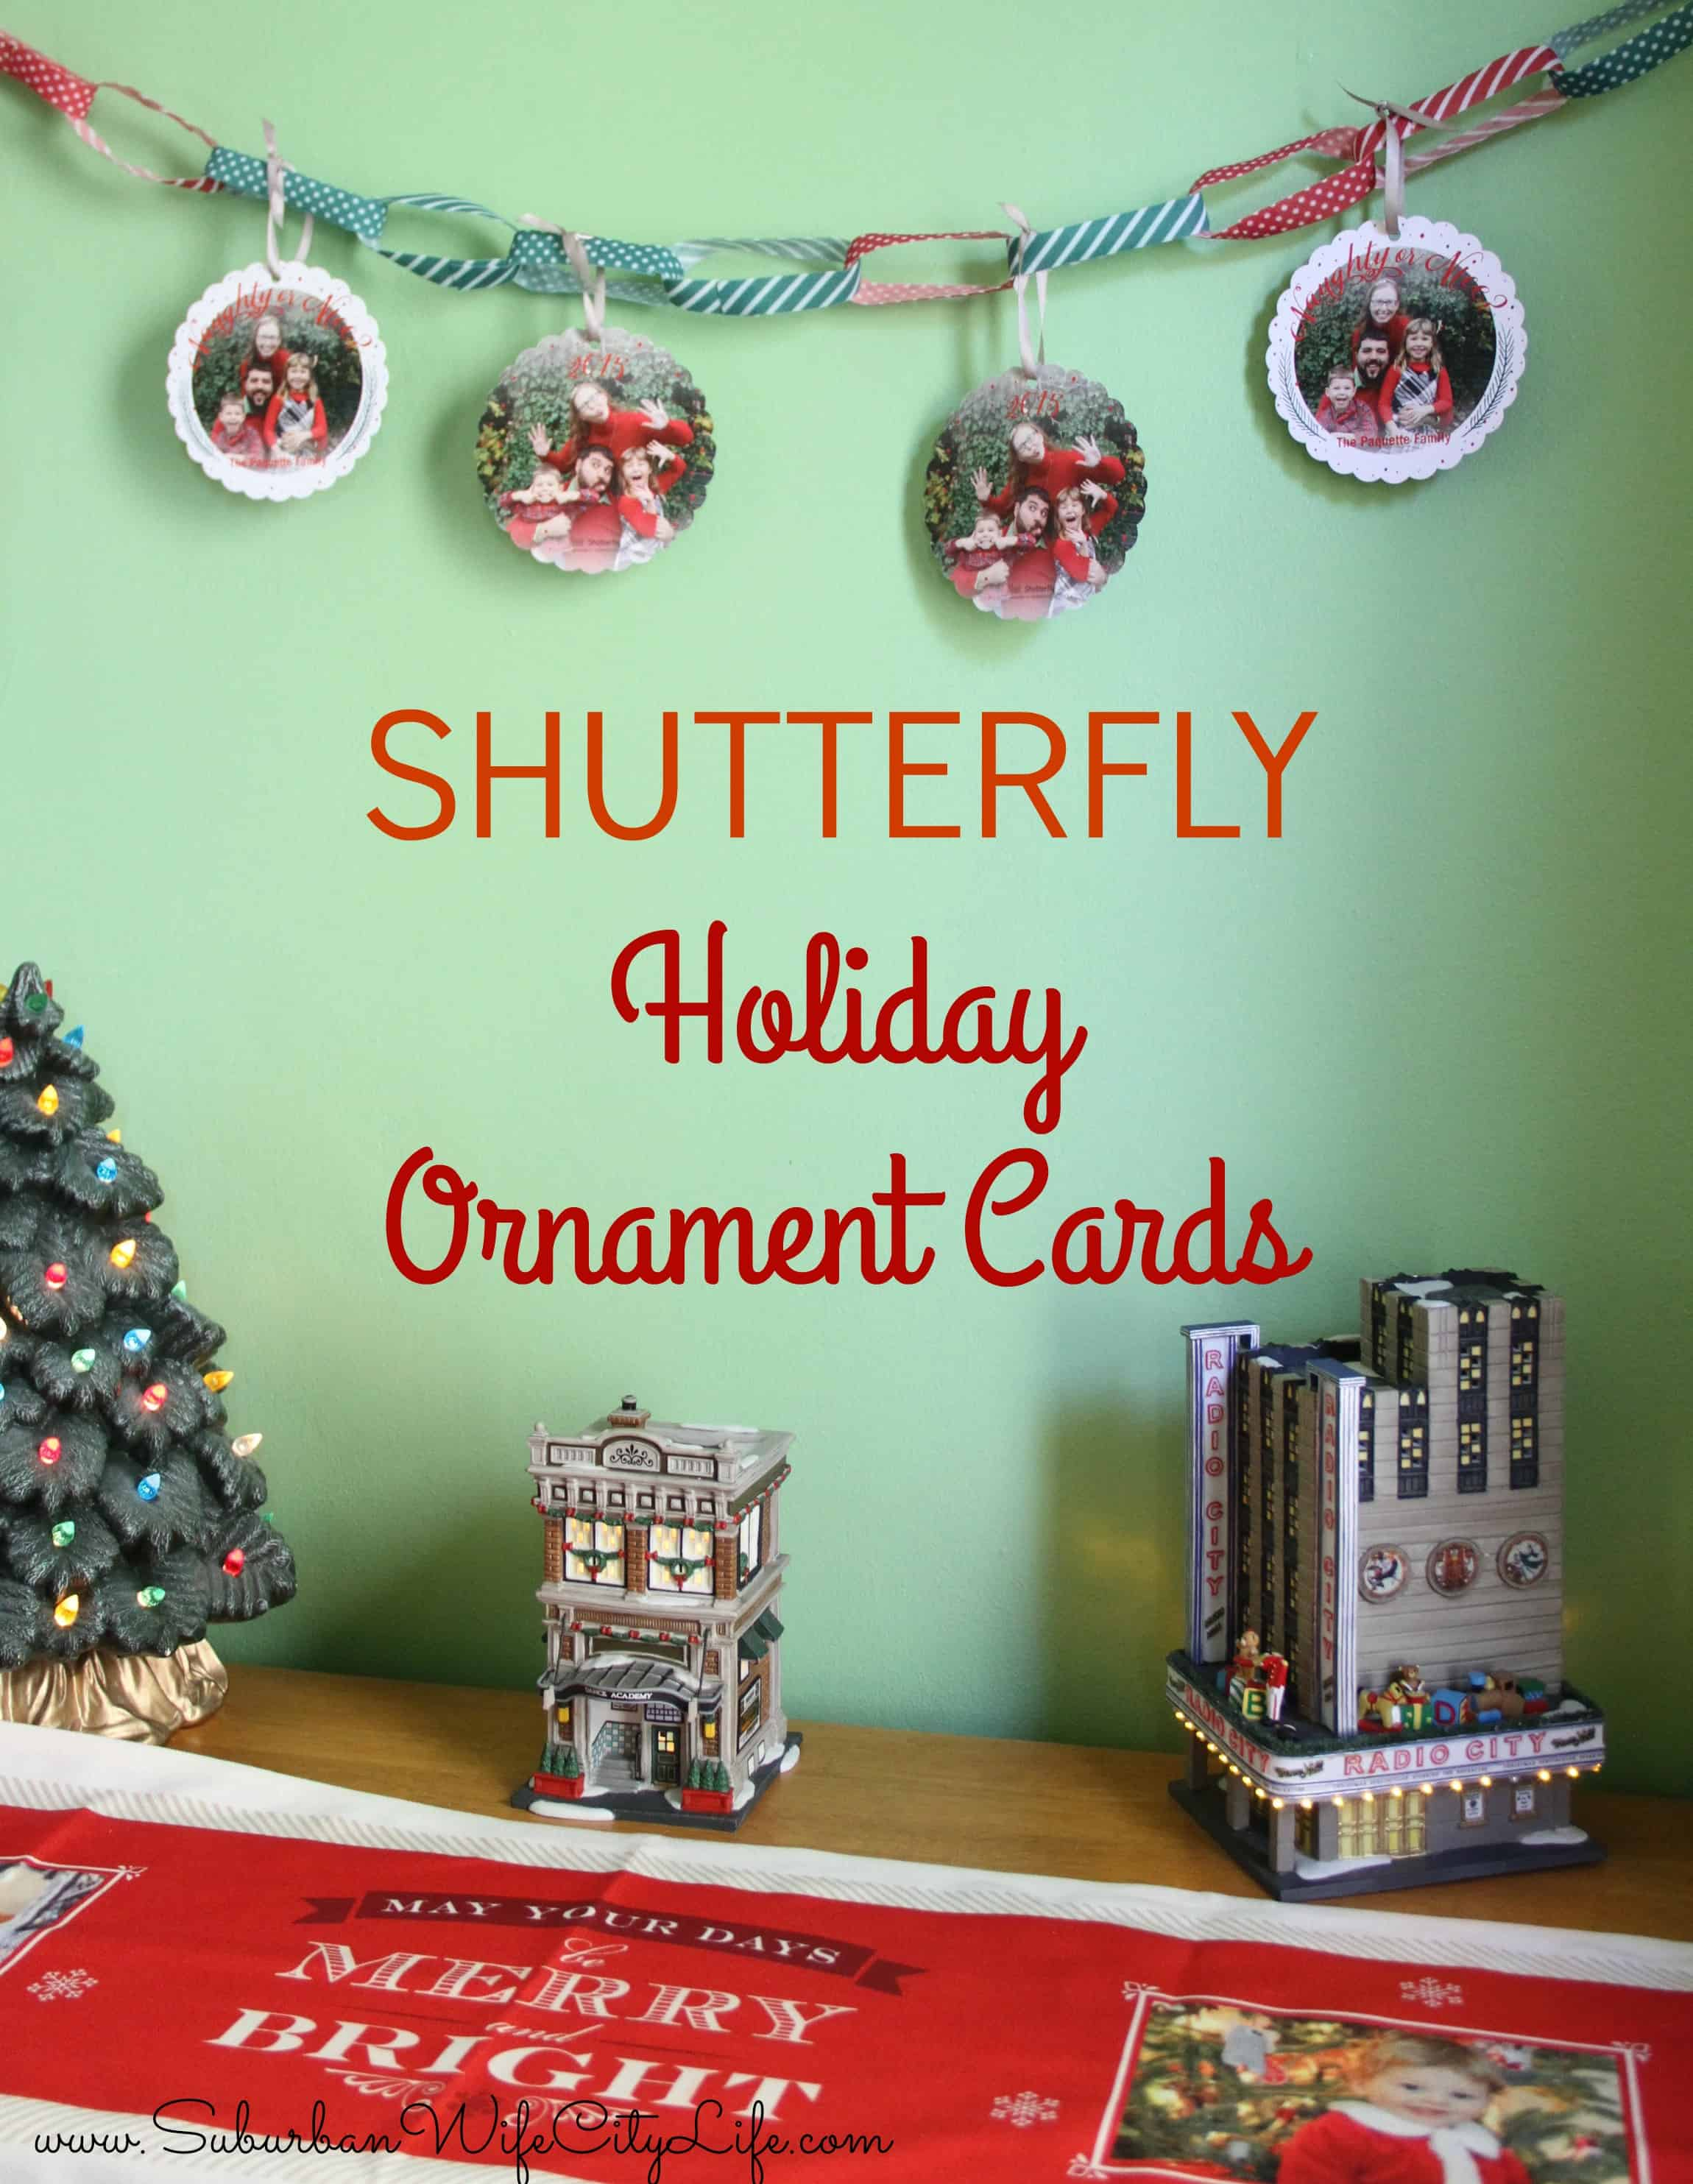 Holiday Ornament Cards from Shutterfly